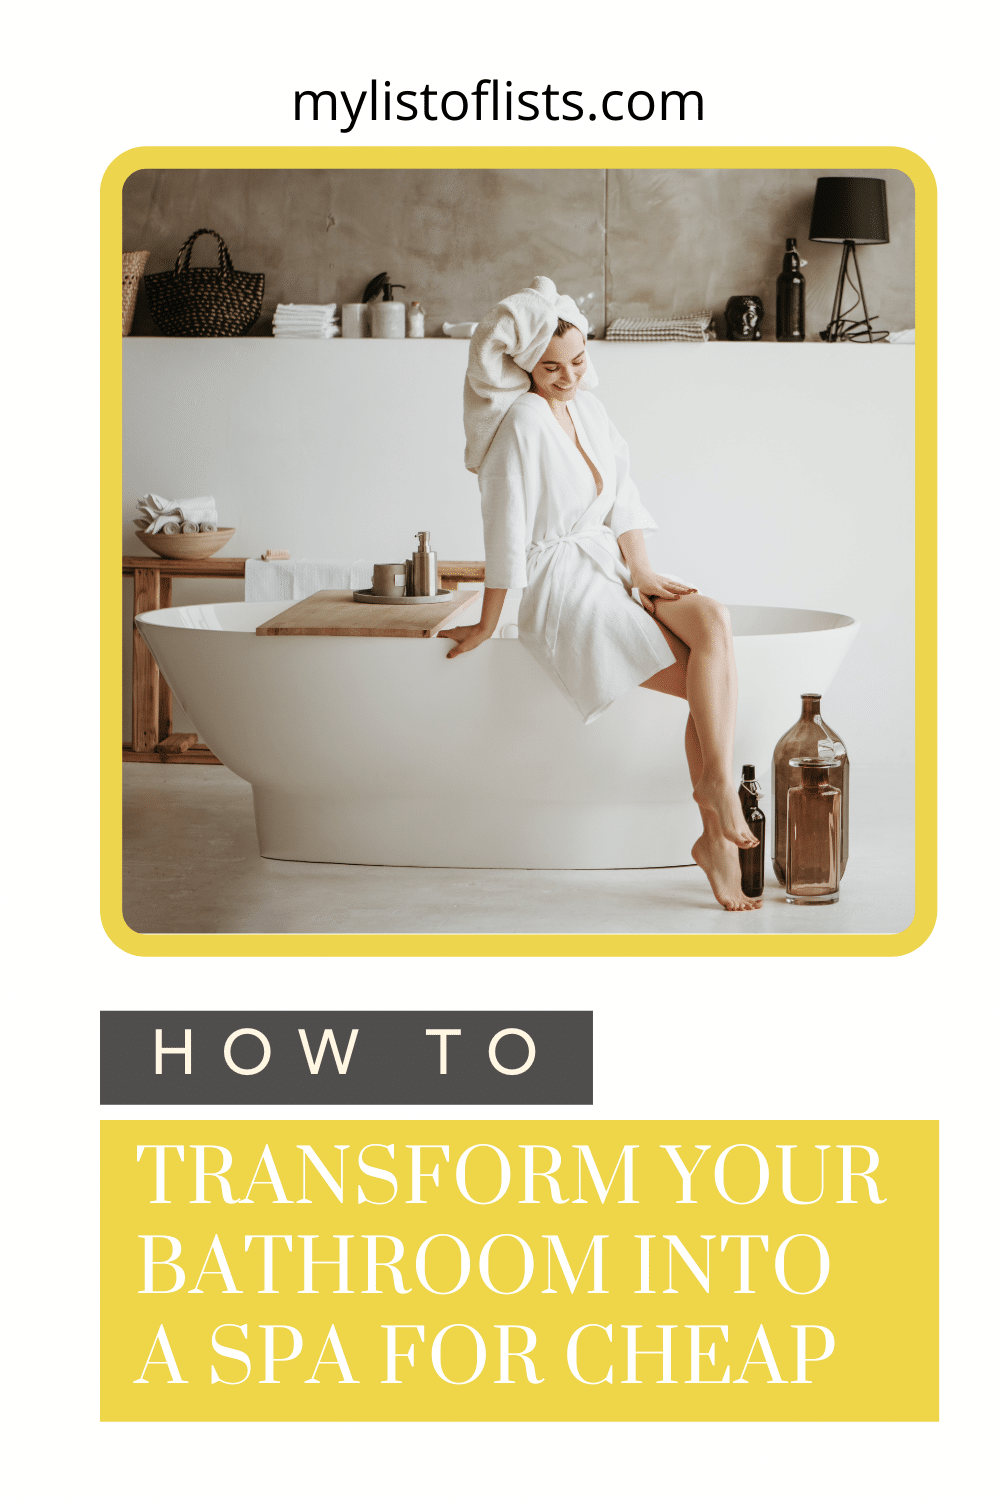 Mylistoflists.com is chock full of creative and practical ideas to make your everyday life easier. Don't waste any money at the spa when you can turn your own bathroom into a spa with these affordable ideas!